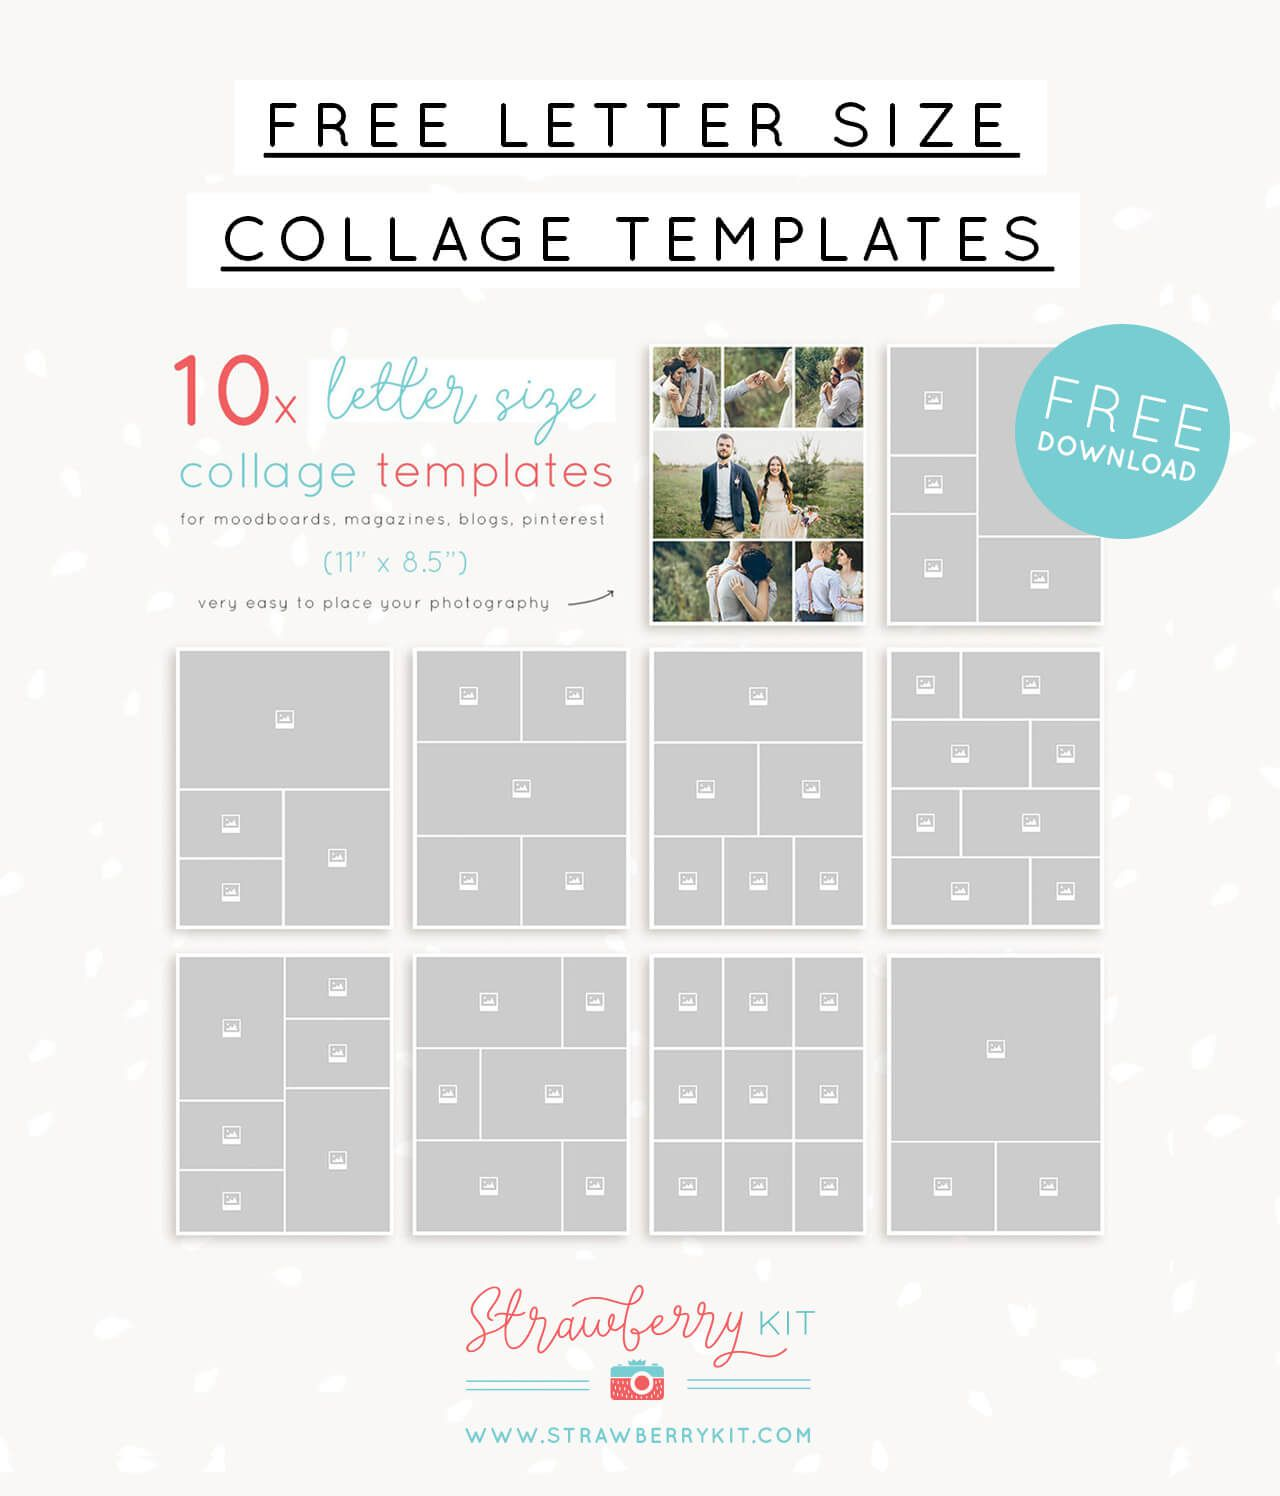 003 Impressive Free Photo Collage Template No Download Example Full